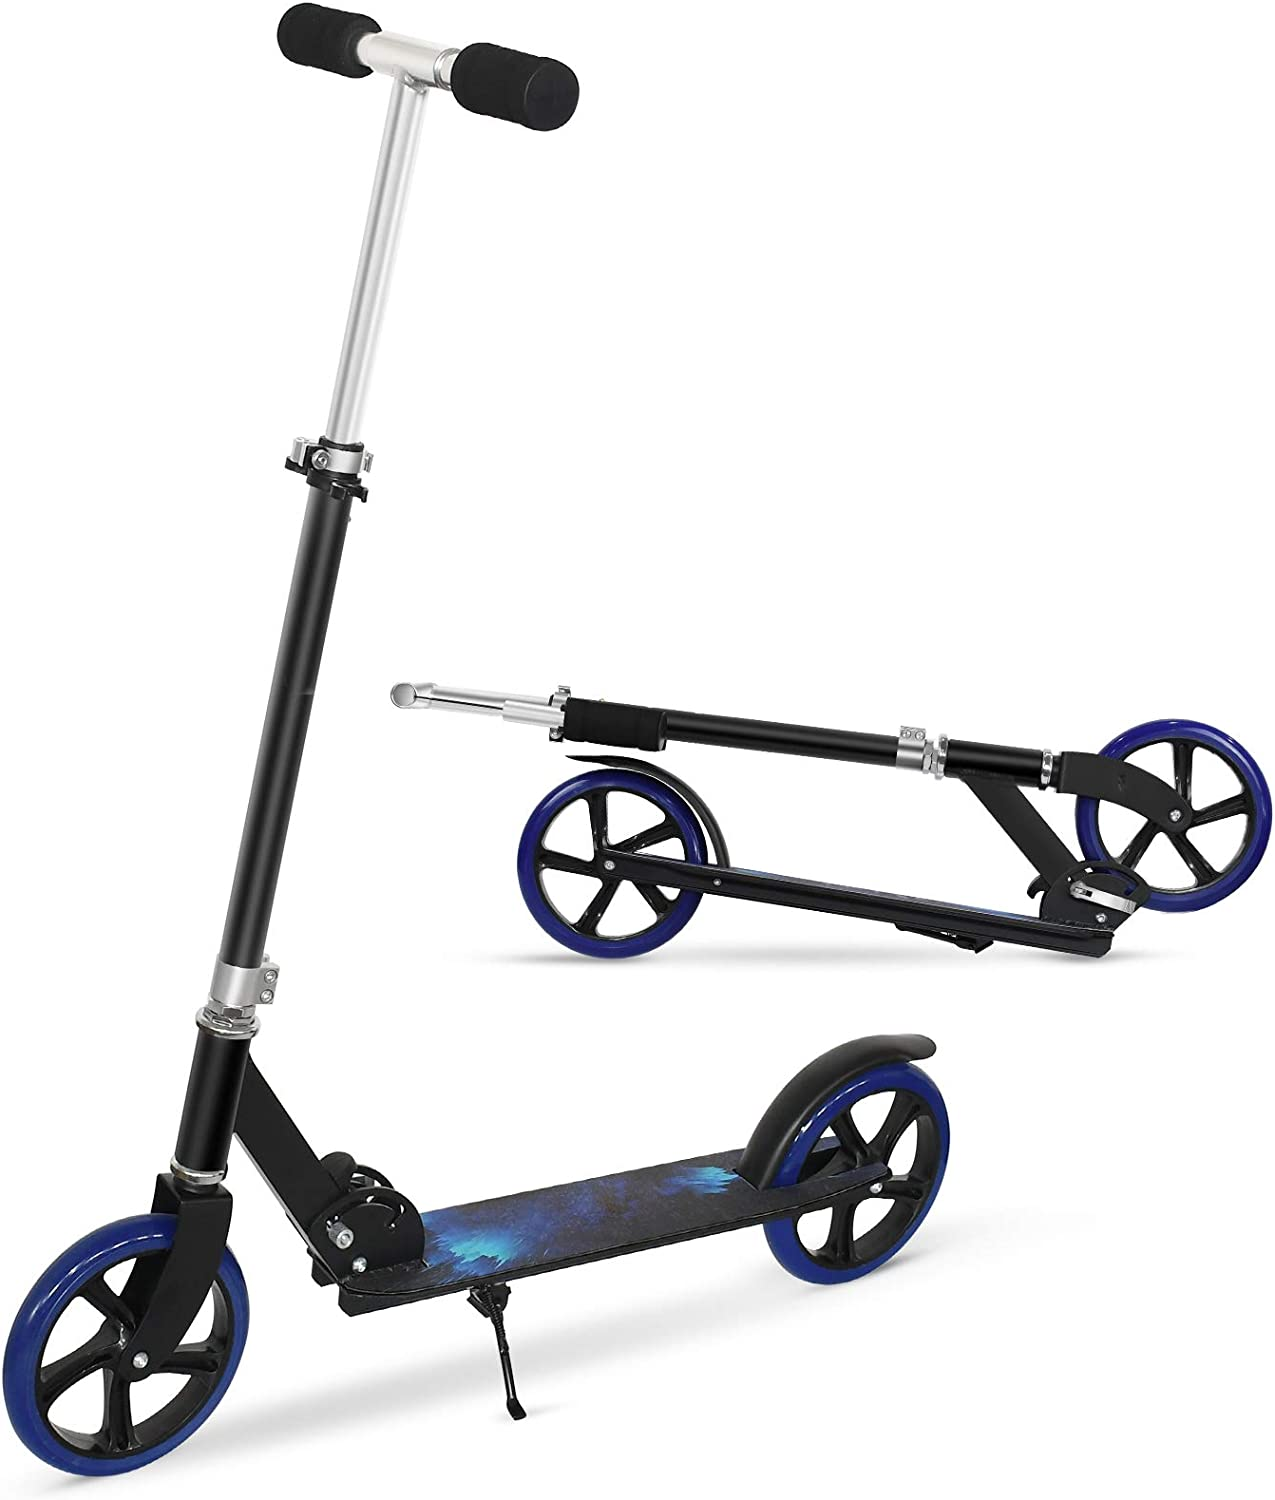 Kick Scooters for The Ages 12 and lbs Max 44% OFF with 200 2021 spring summer new Up Adult Scooter